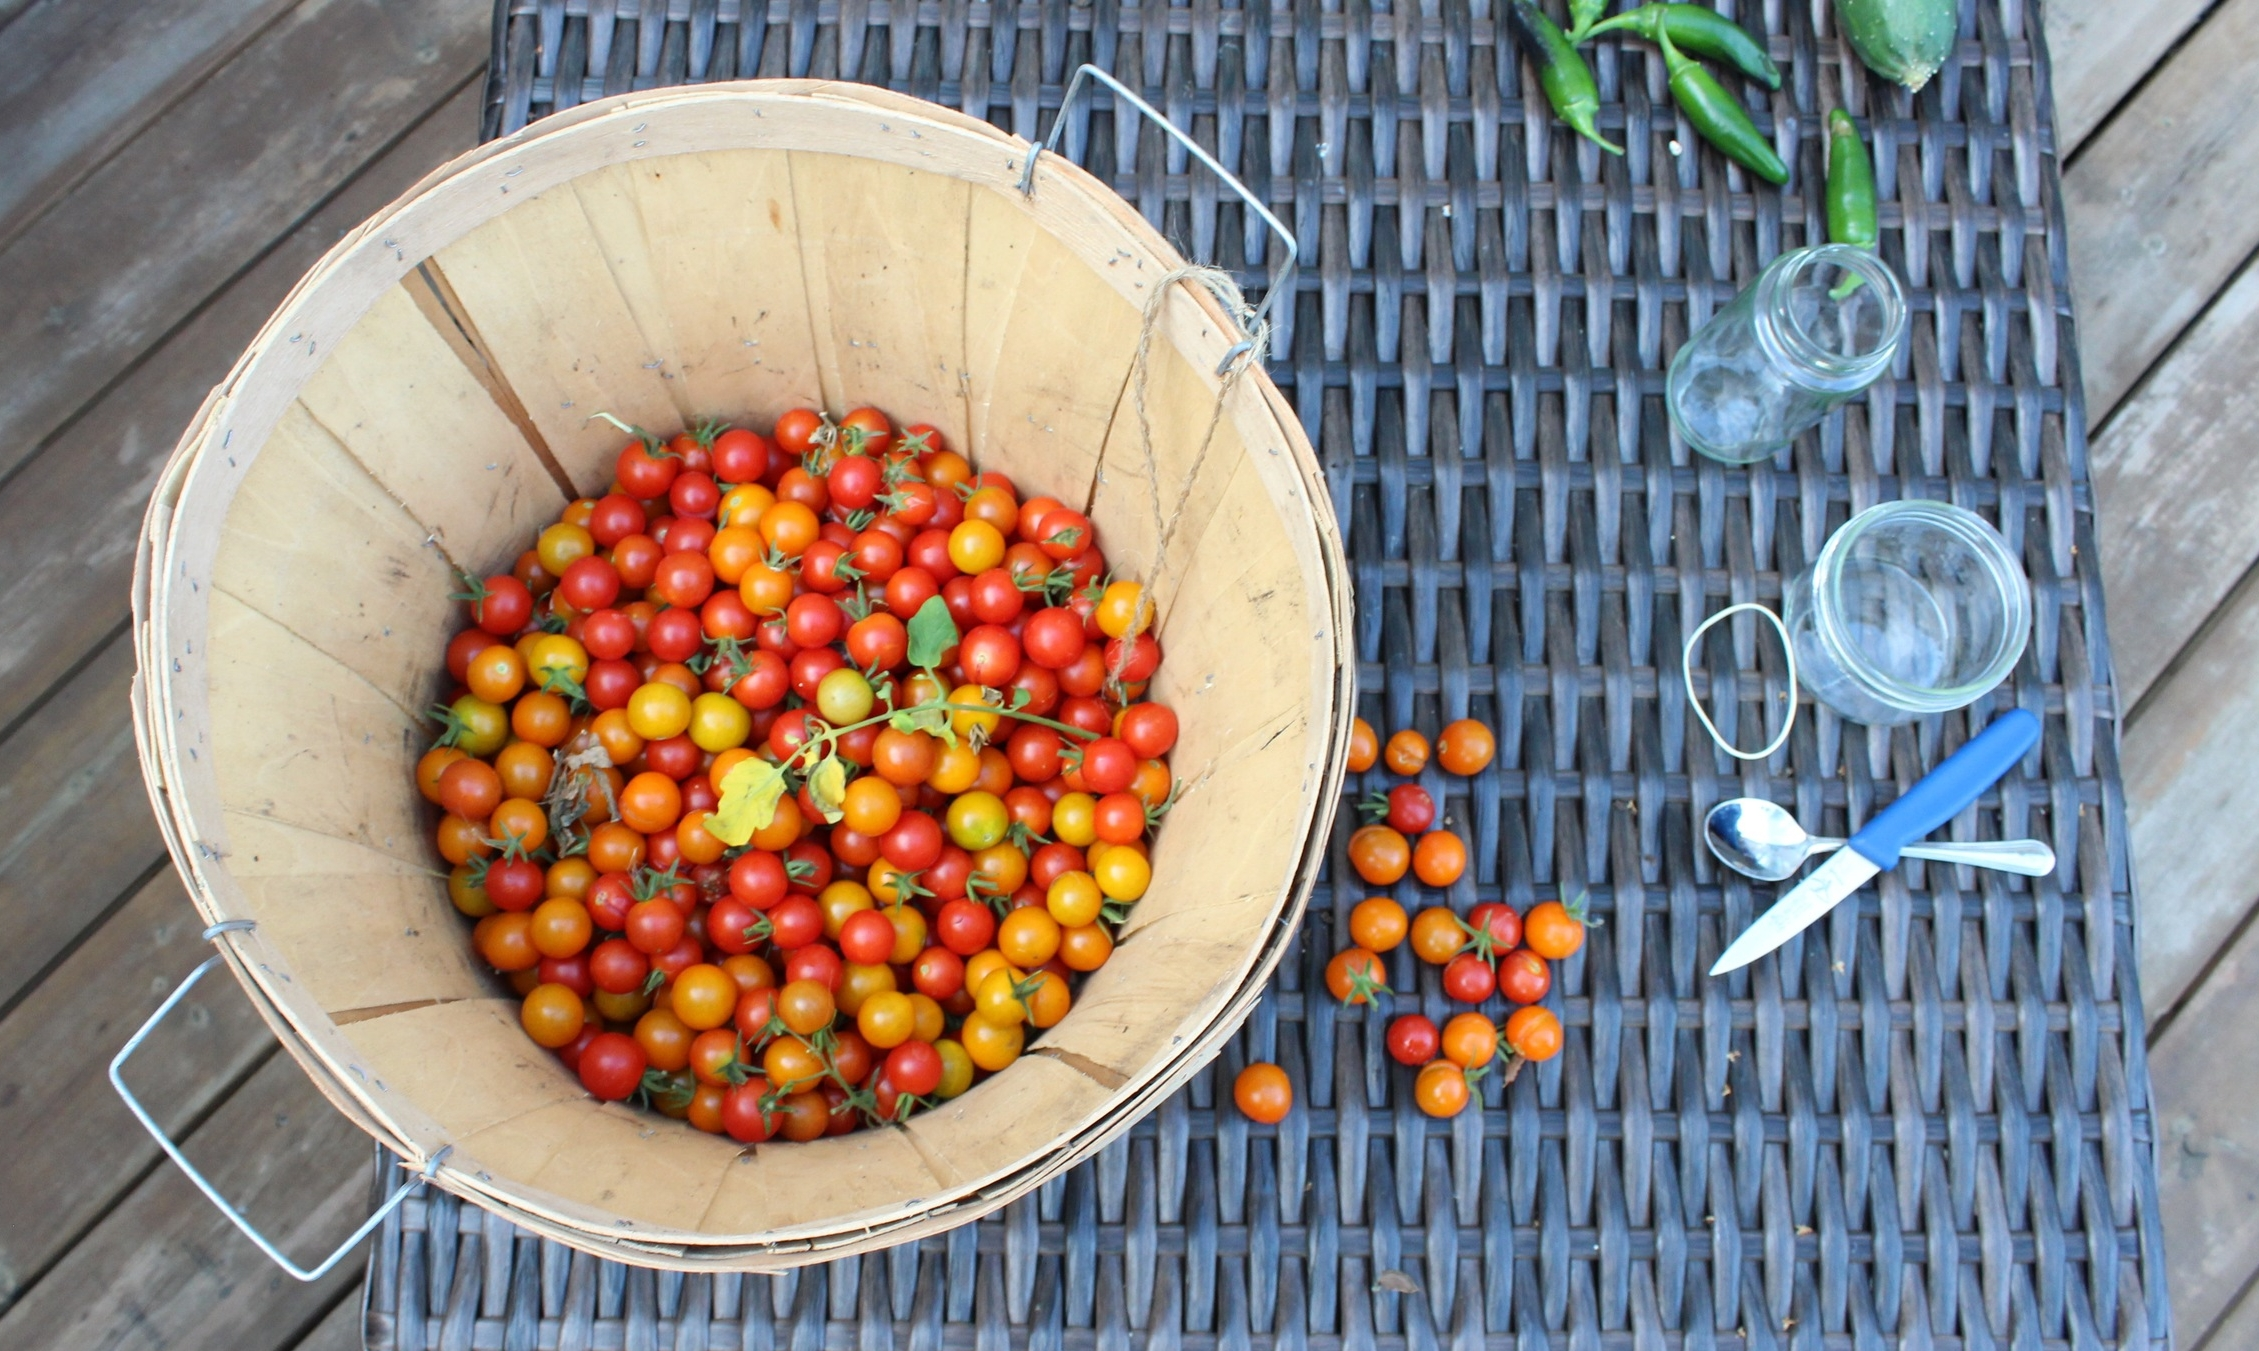 Today we seeded cherry tomatoes, cucumbers, and peppers